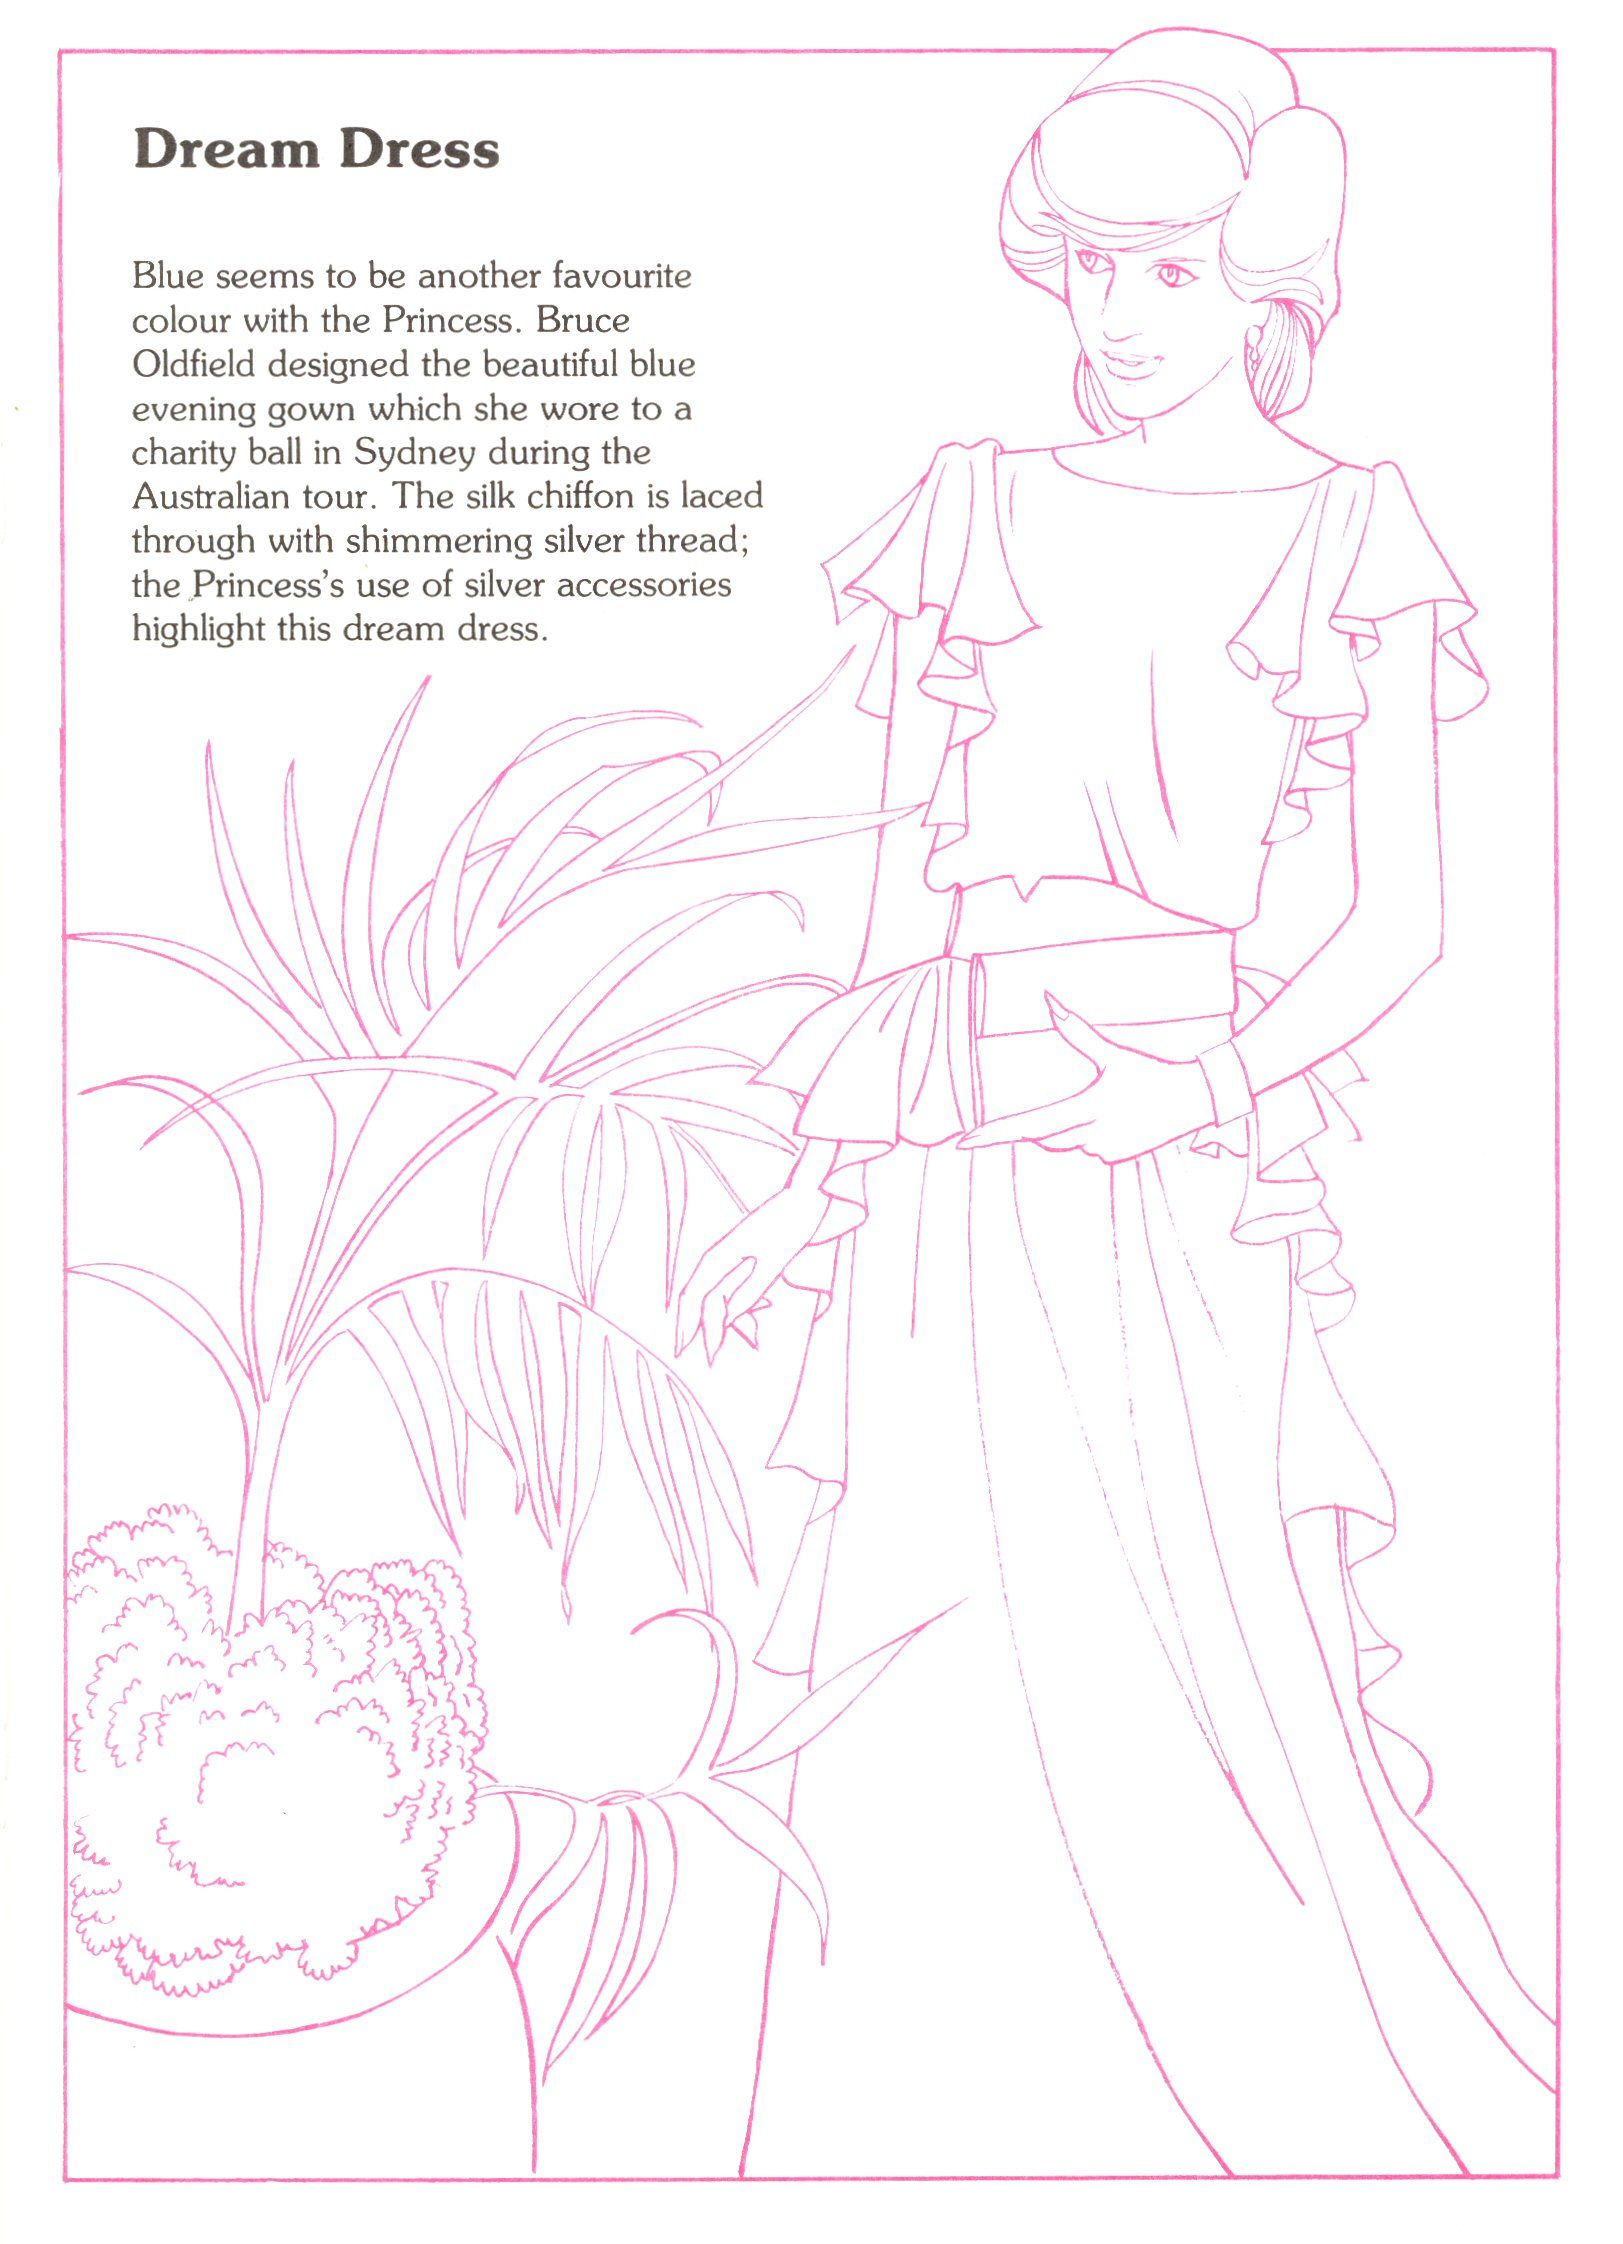 Princess Diana Fashion Collection Book 4 Social Studies Culture